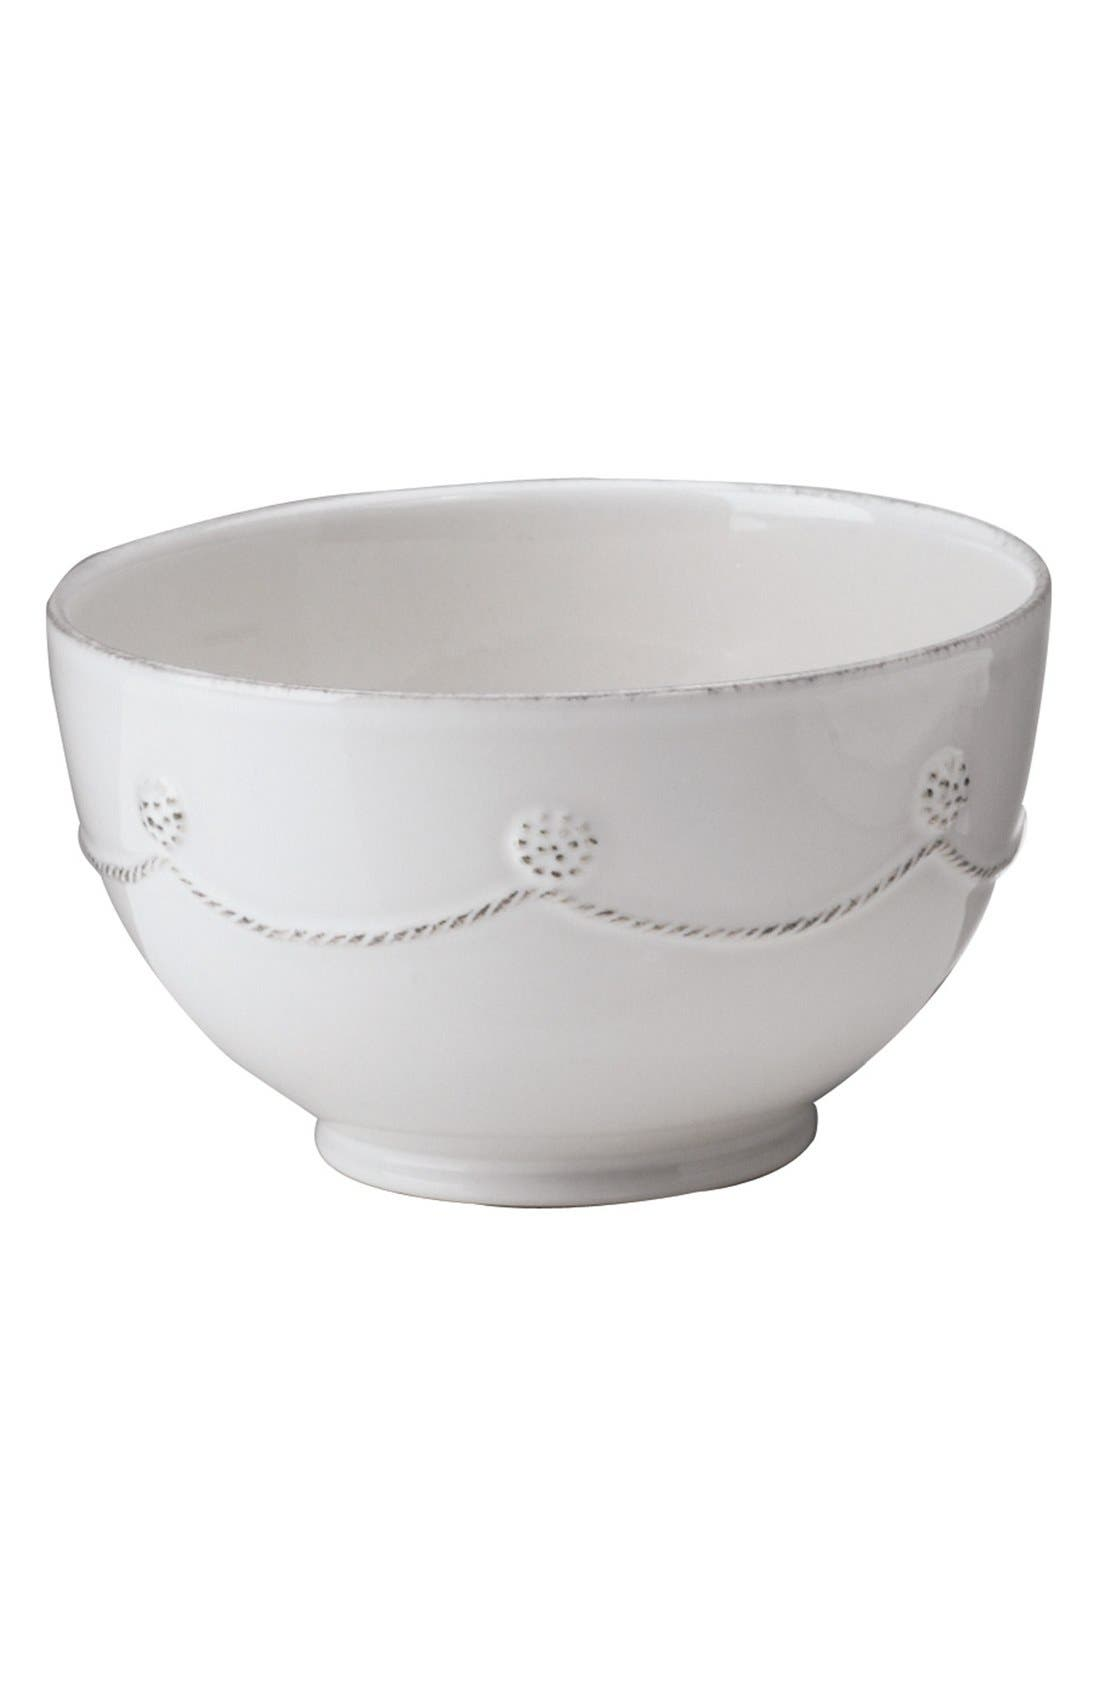 'Berry and Thread' Cereal Bowl,                             Main thumbnail 1, color,                             WHITEWASH